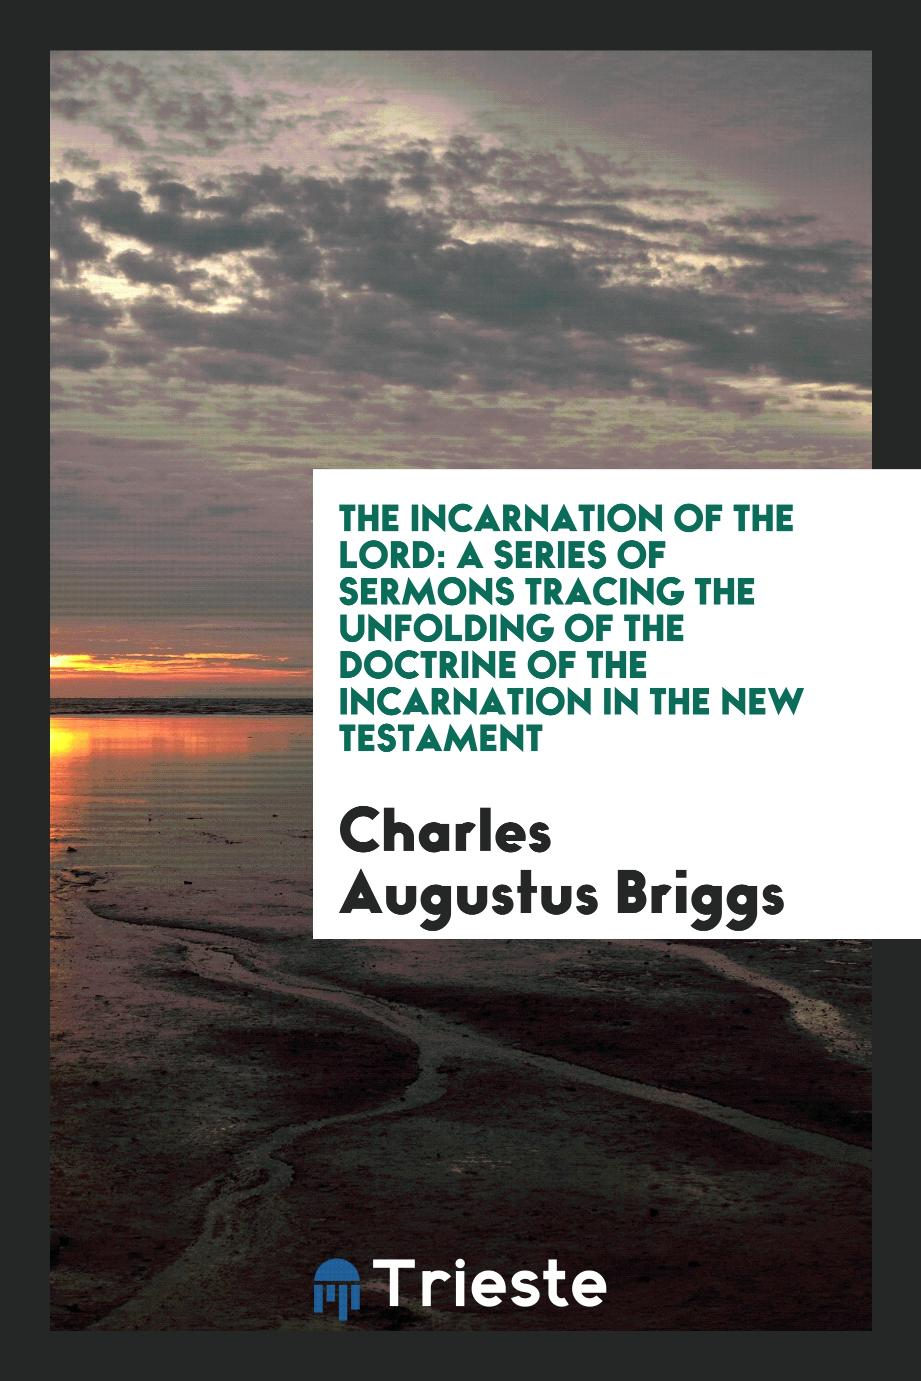 The incarnation of the Lord: a series of sermons tracing the unfolding of the doctrine of the incarnation in the New Testament